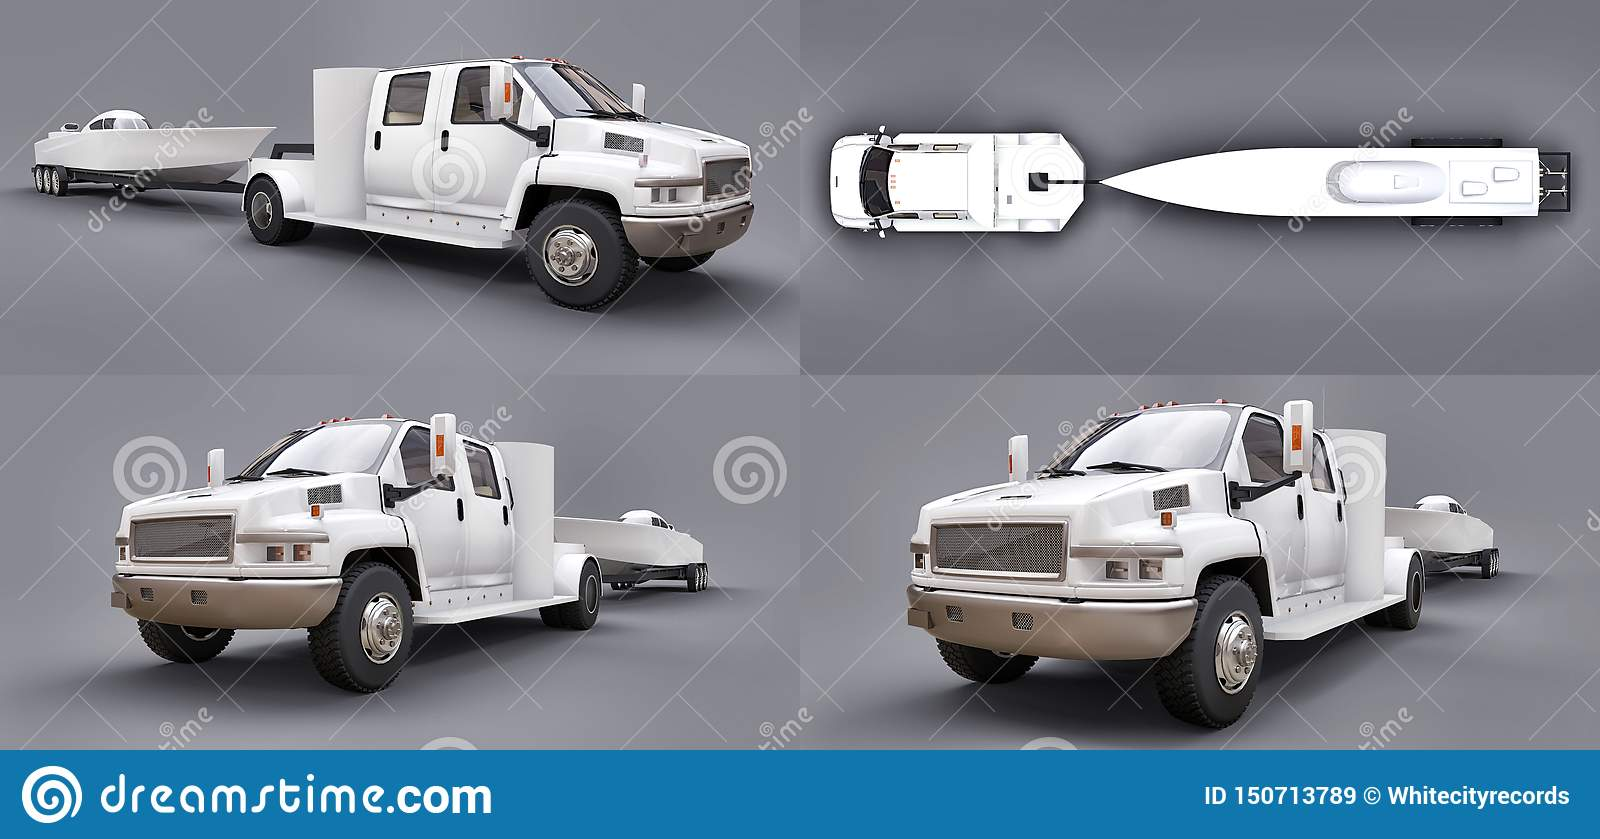 Set white truck with a trailer for transporting a racing boat on a grey background. 3d rendering.